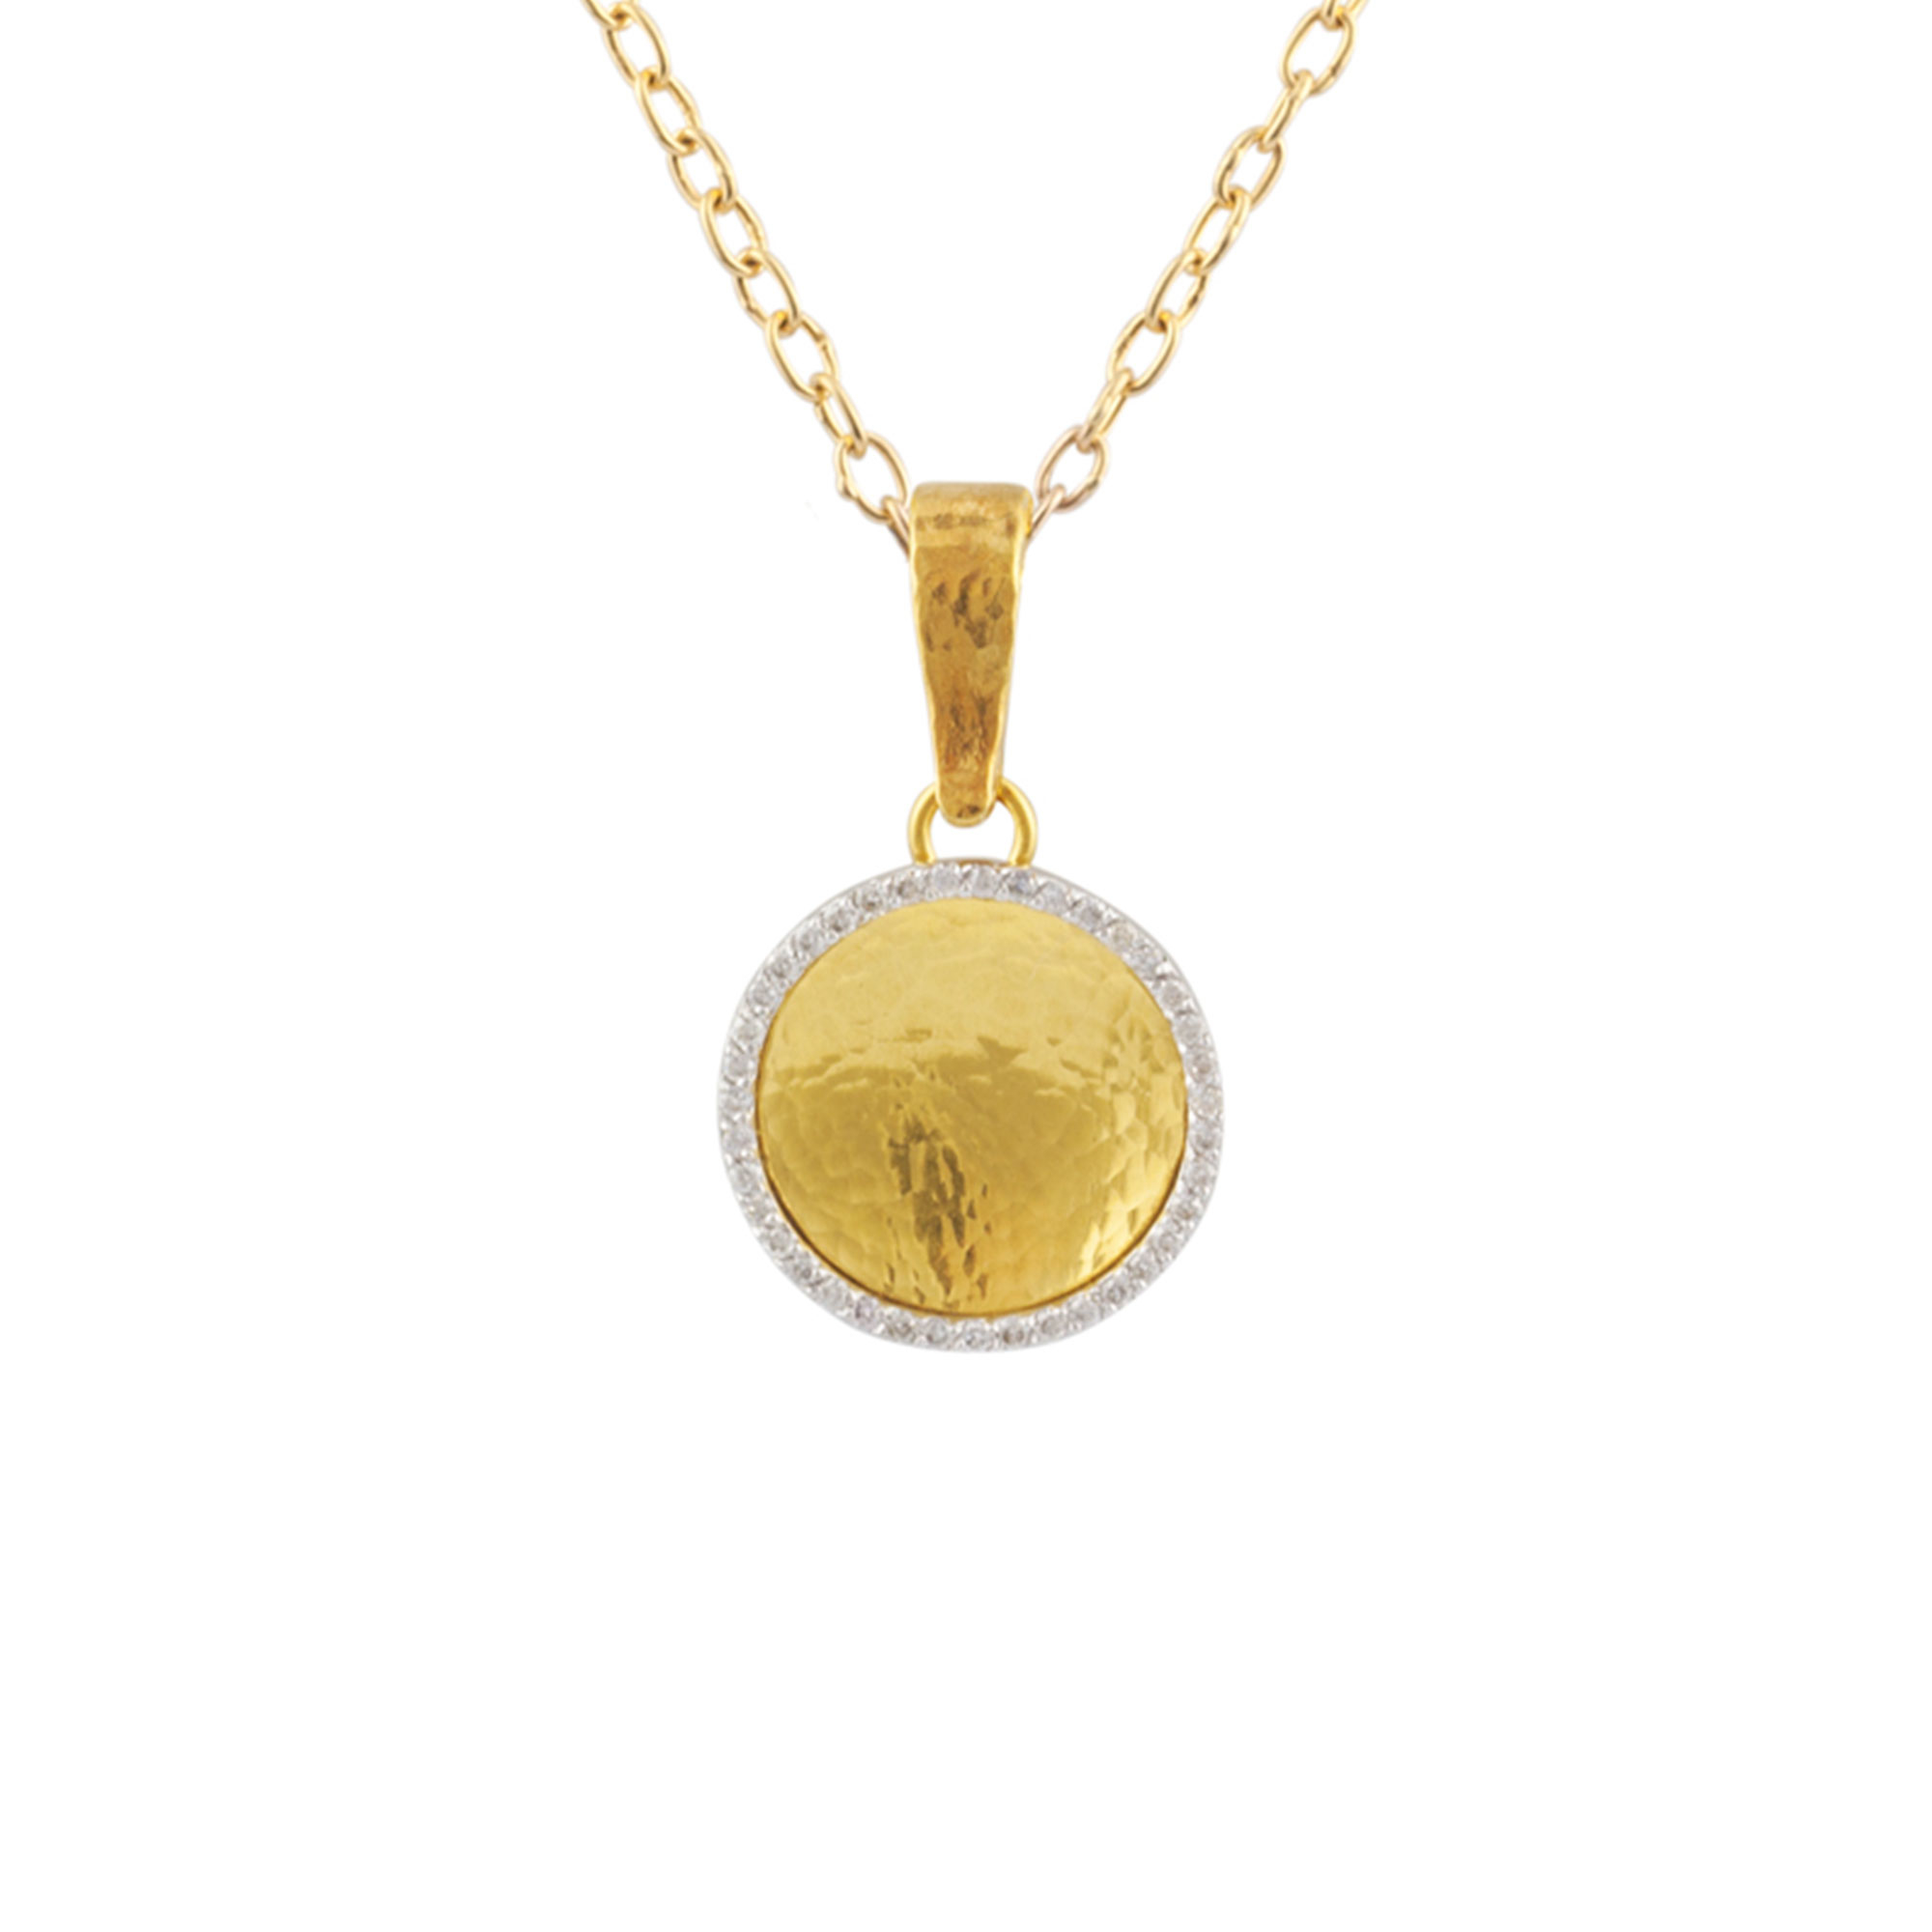 Gurhan 18-22-24K Yellow Gold .16cts White Diamond Gold Necklace with Stones CHN-16MM-STB-DI-18